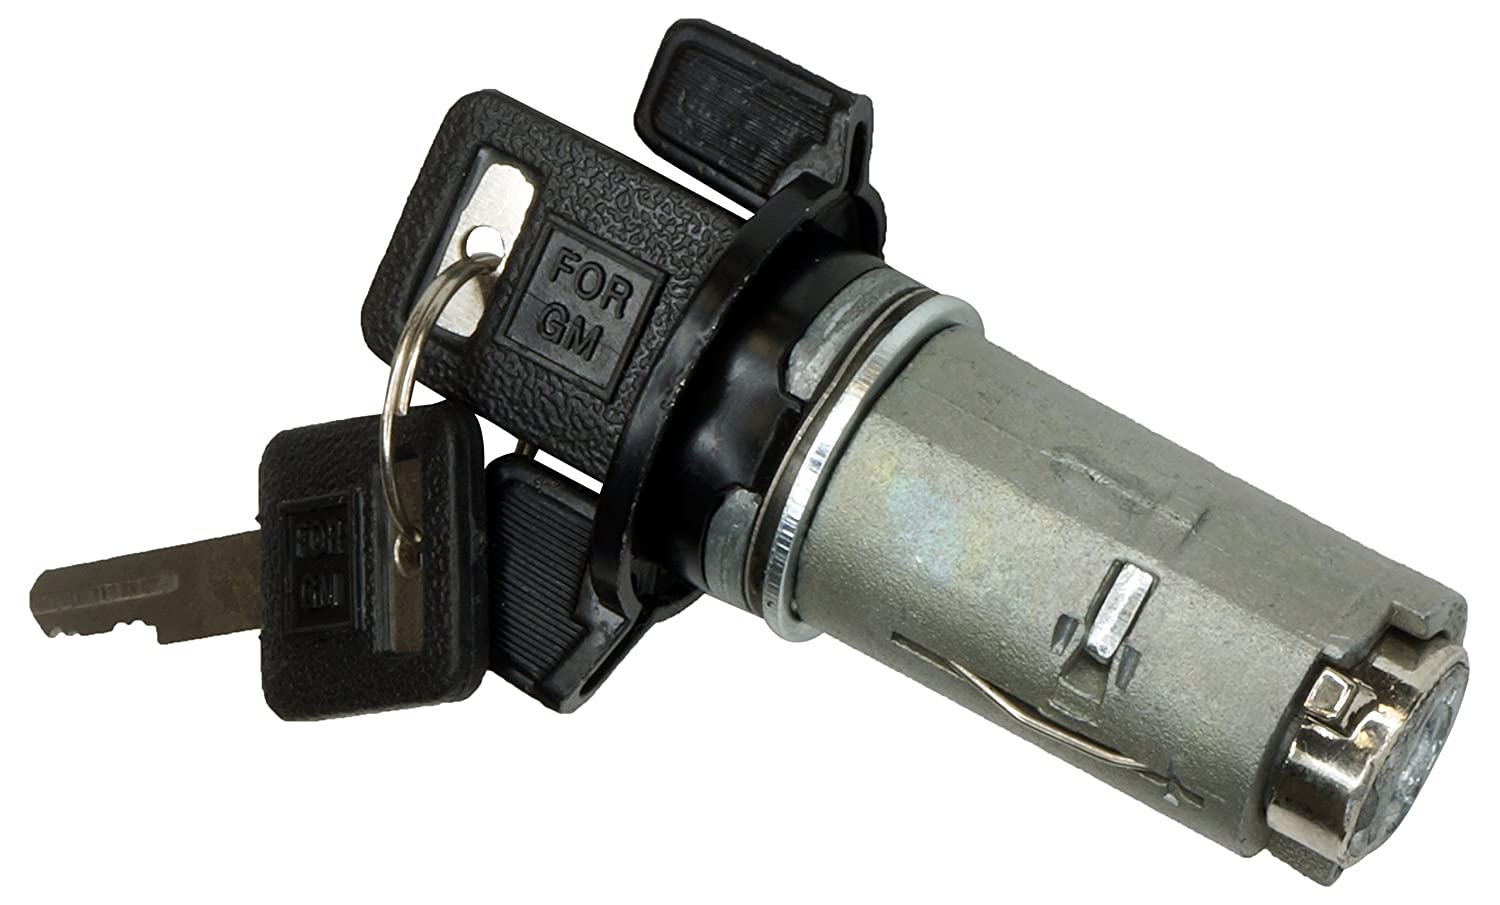 Formula Auto Parts ILC8 Ignition Lock Cylinder